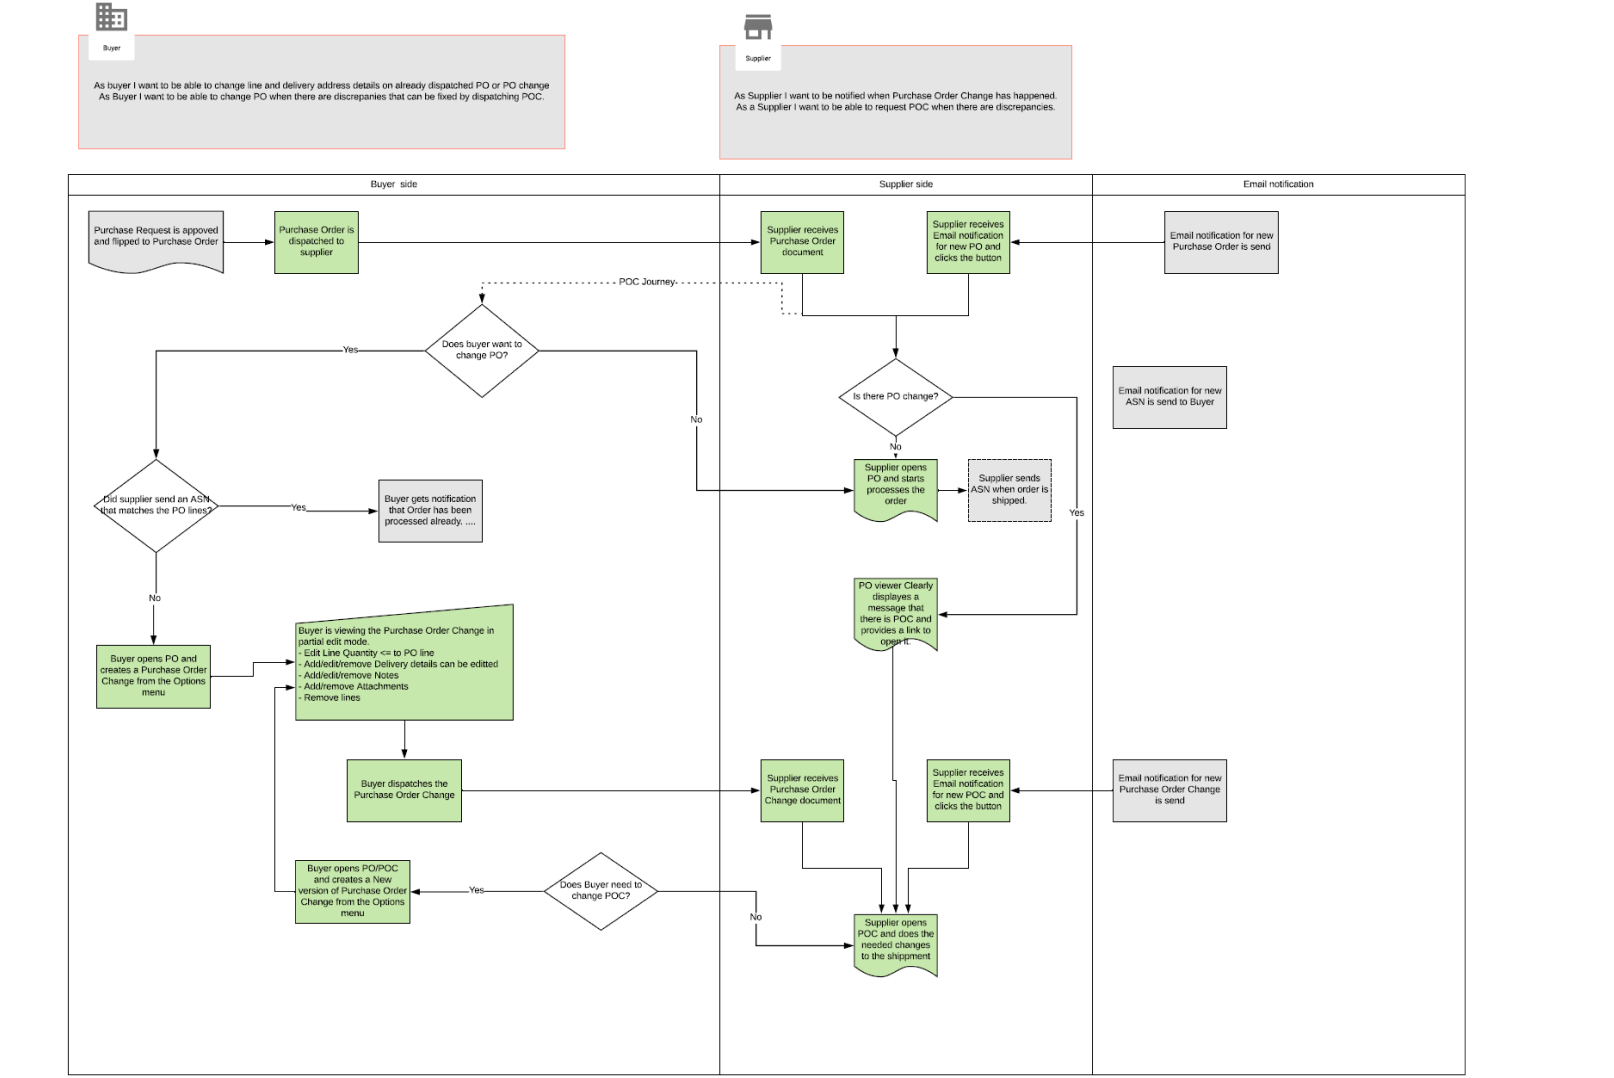 Flowchart for Purchase order change